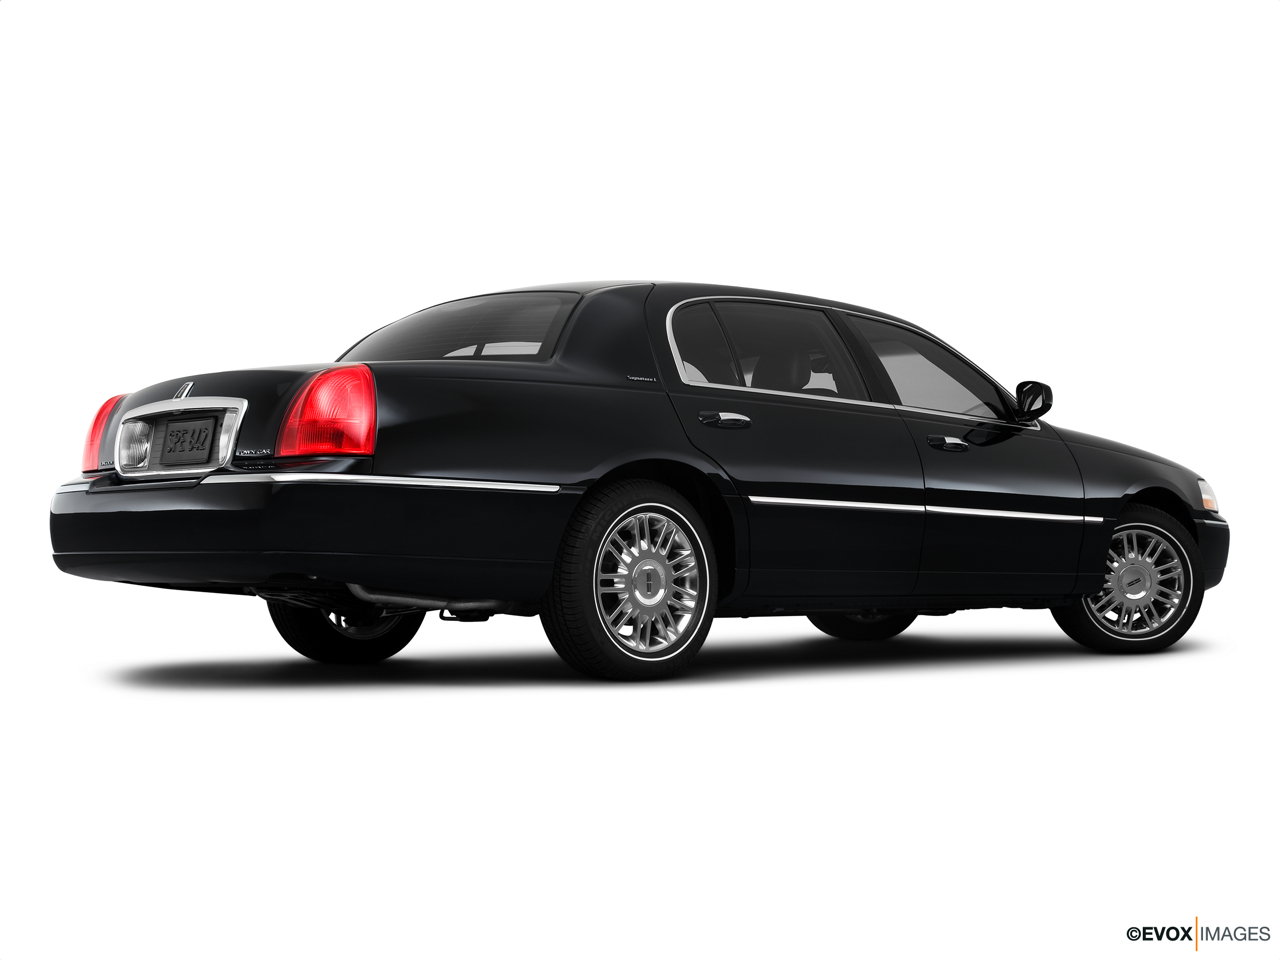 2010 Lincoln Town Car Signature L Low/wide rear 5/8.